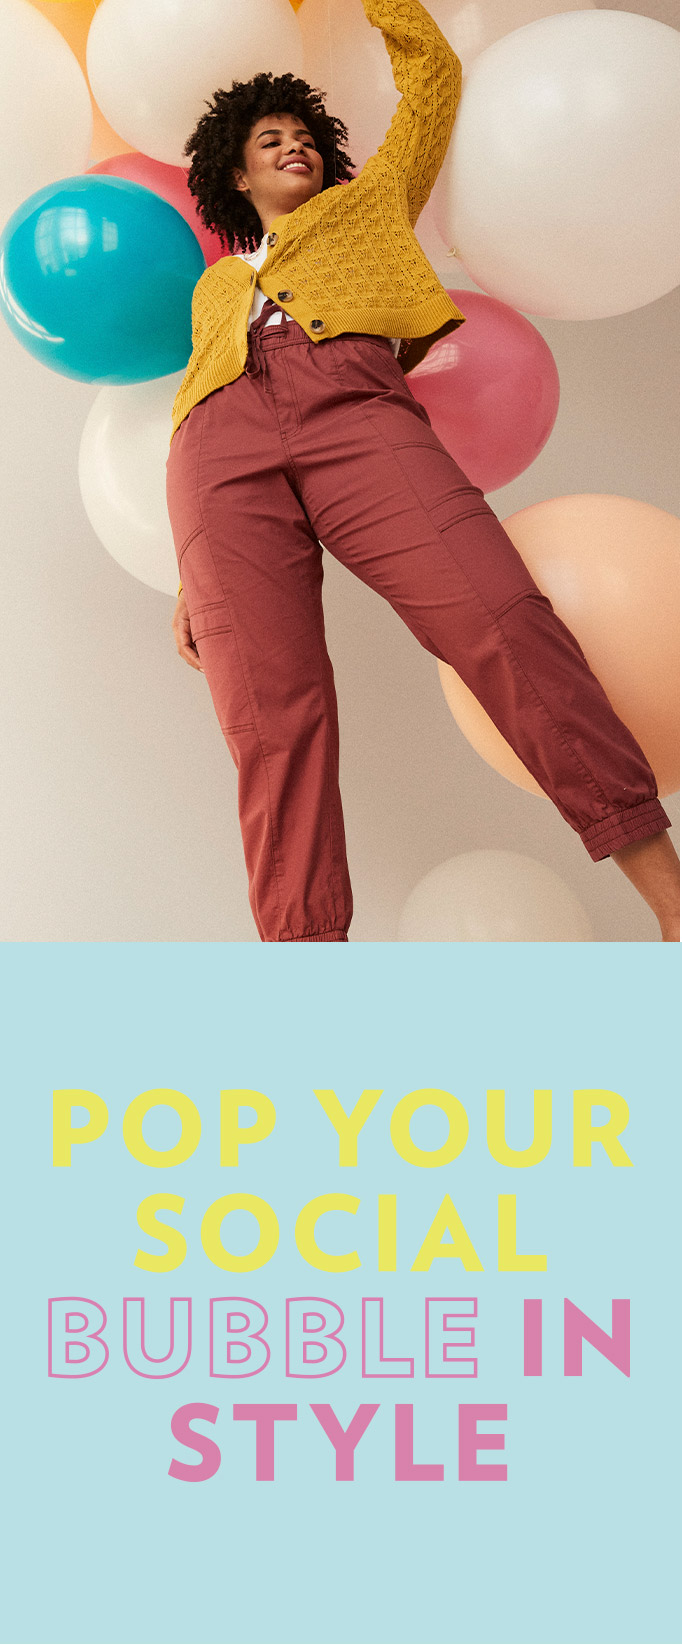 Pop your social bubble in style.